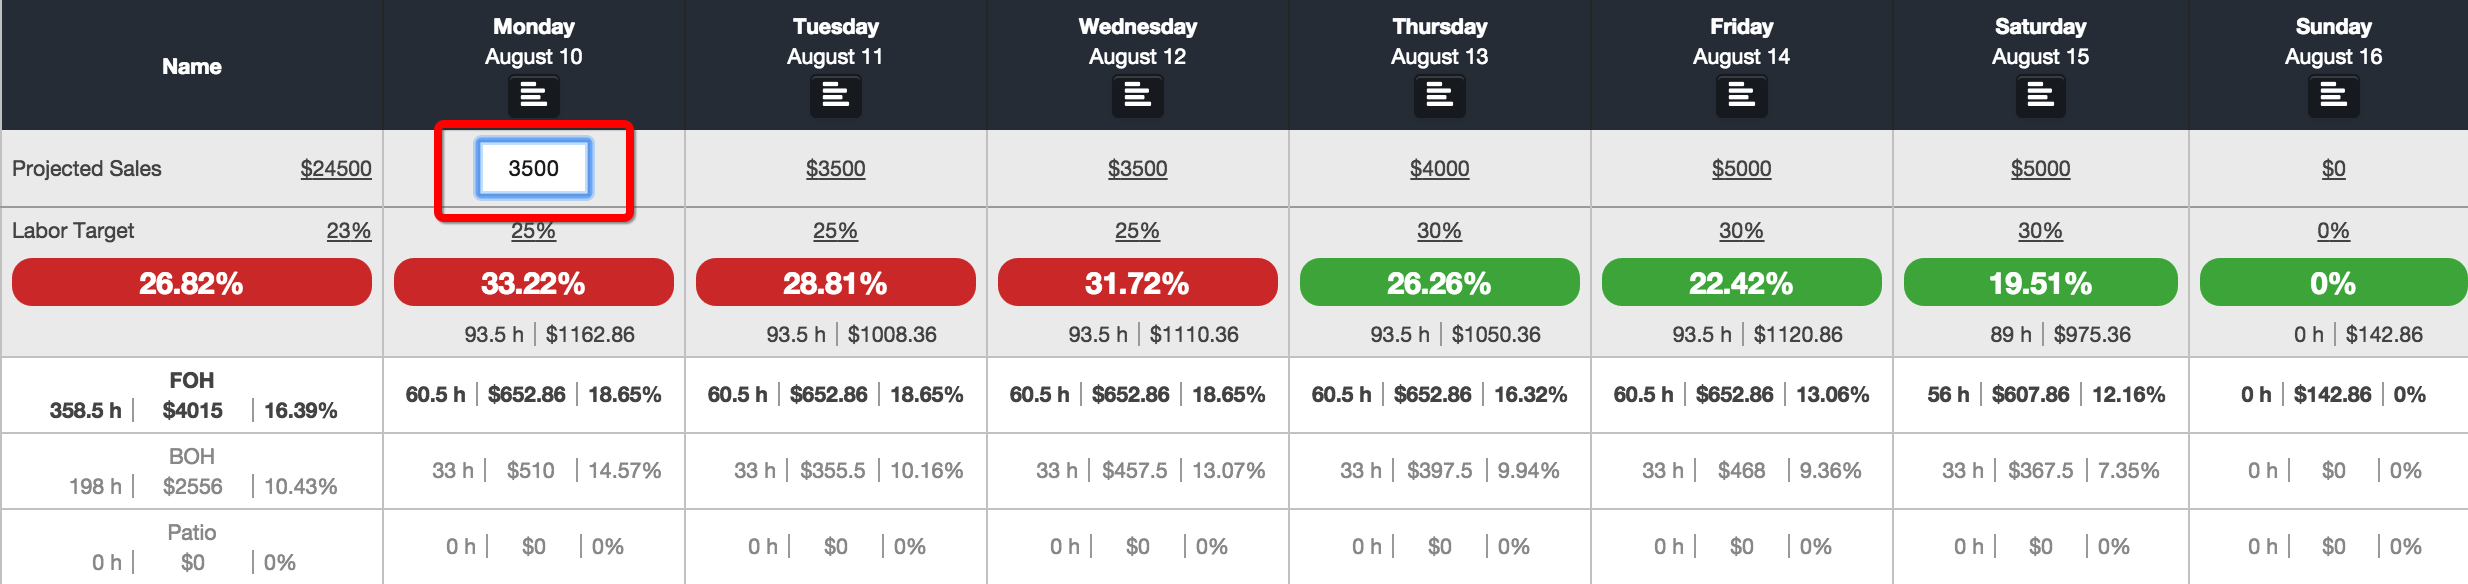 weekly budget tool 7shifts support